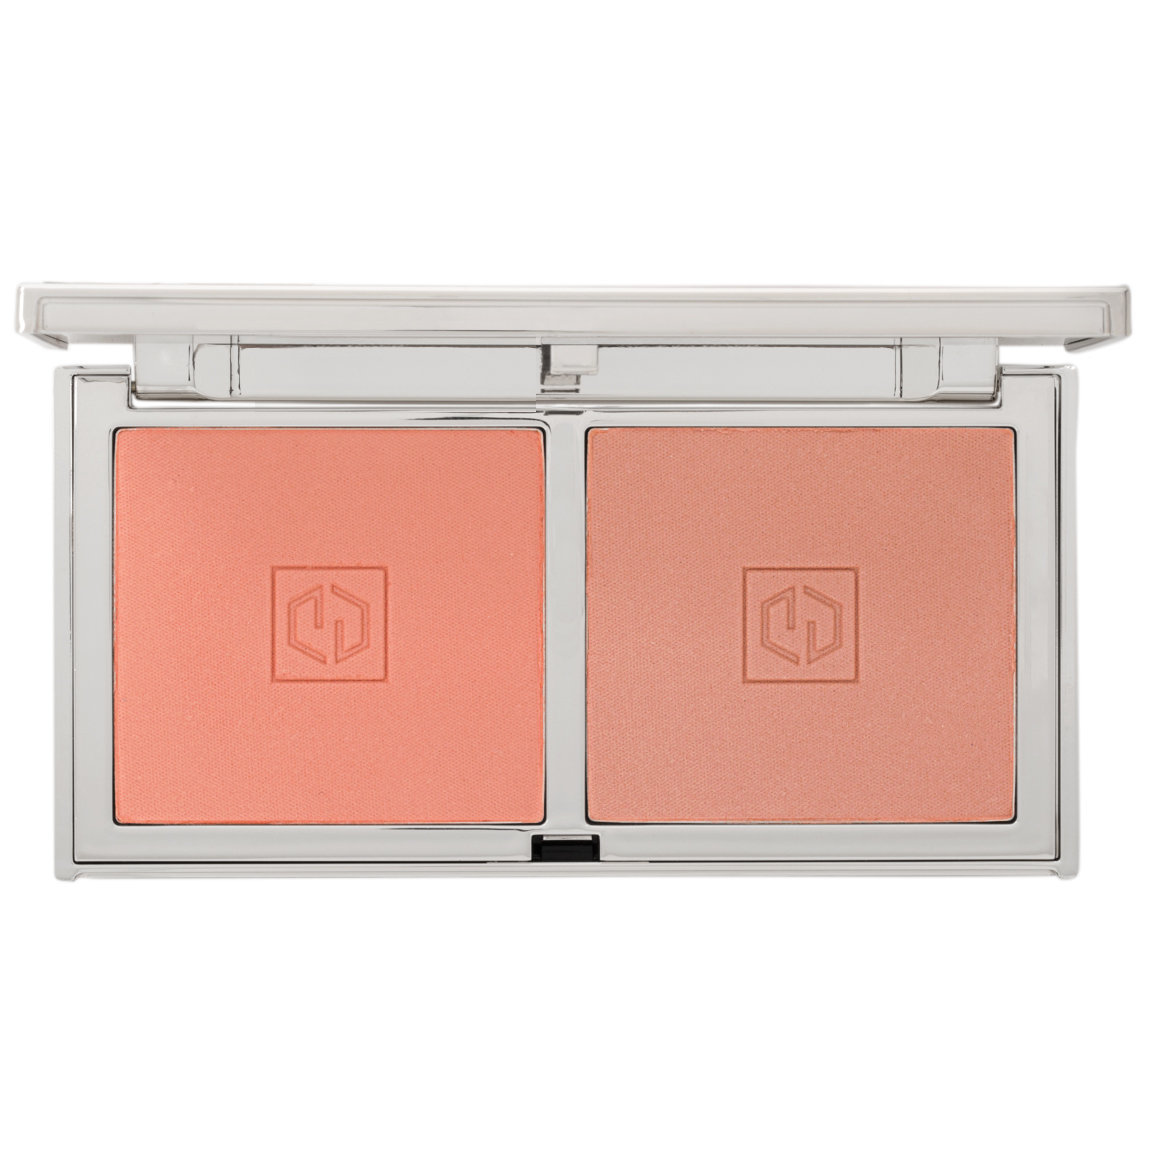 Jouer Cosmetics Blush Bouquet Adore product smear.